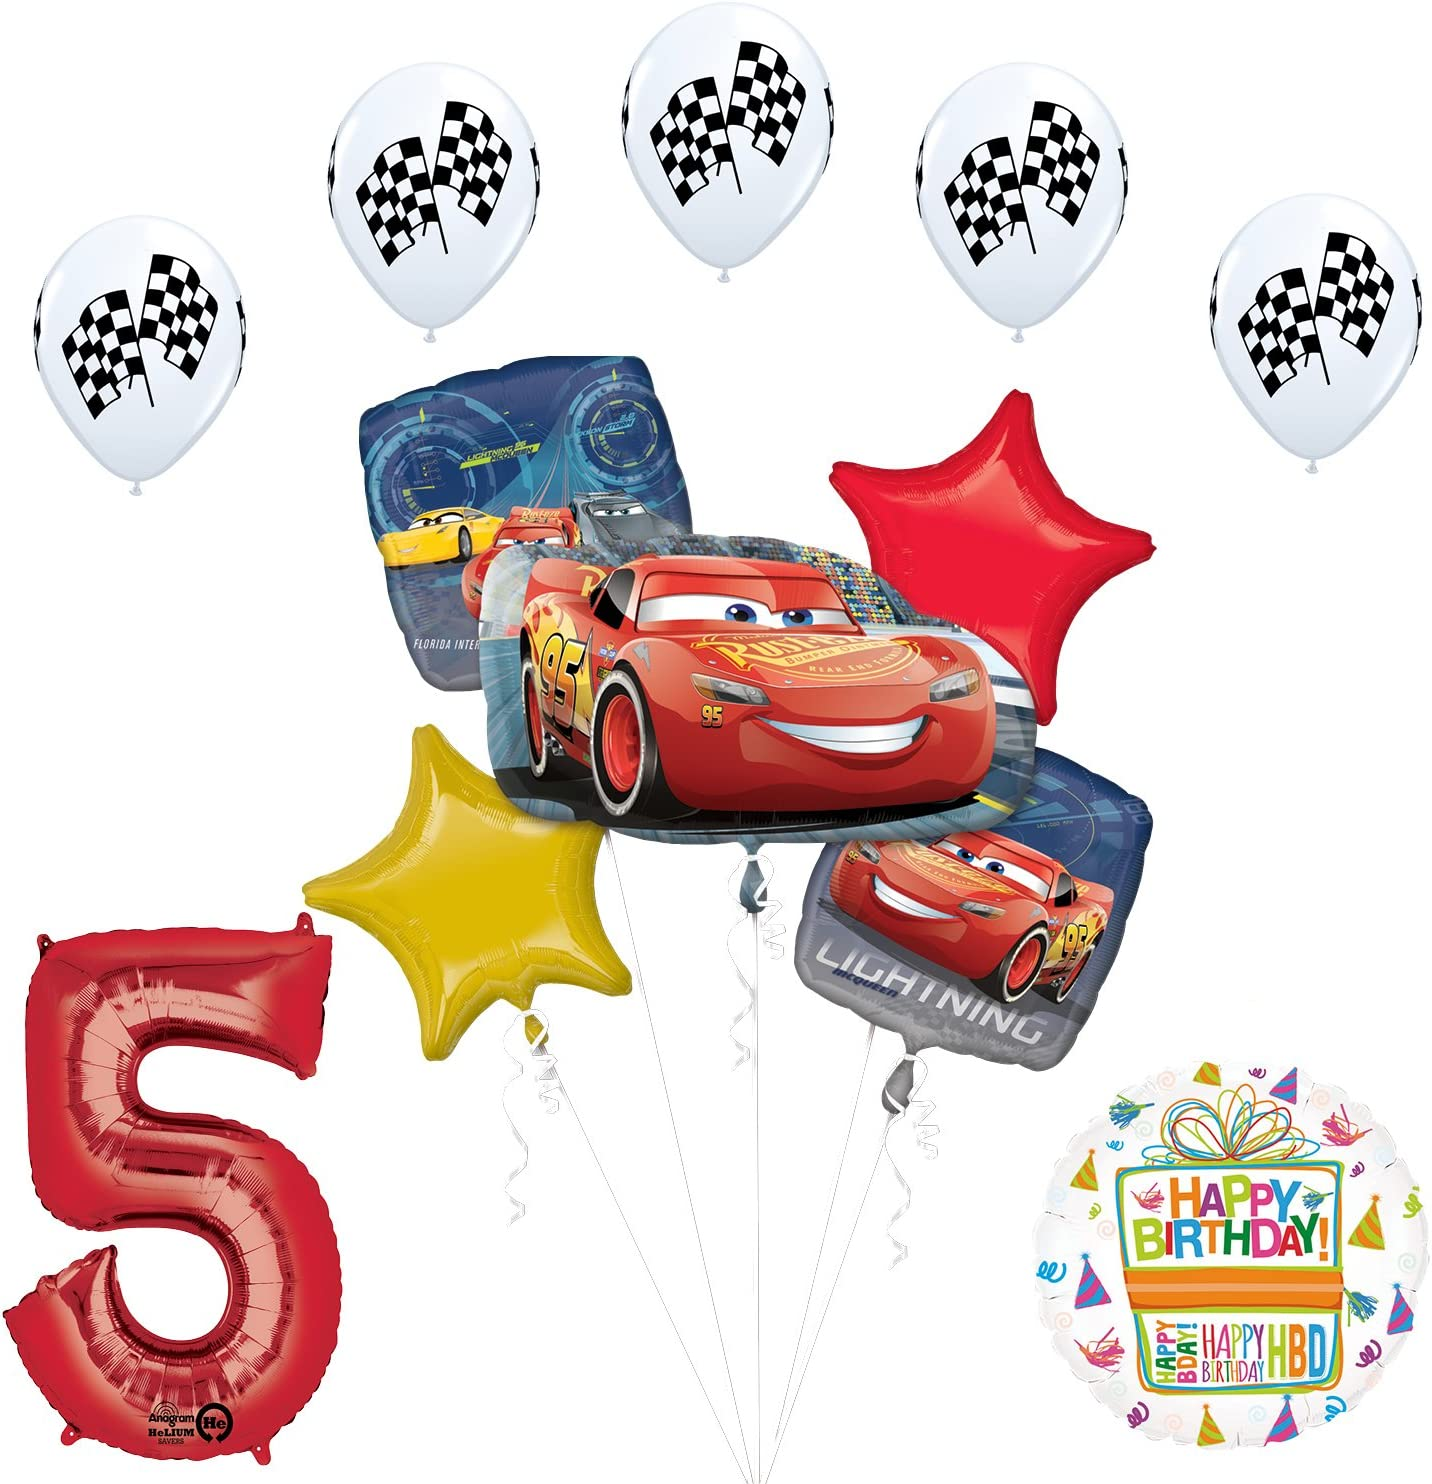 Disney Cars 4th Birthday Party Supplies 8 Guest Kit and Balloon Bouquet Decor...